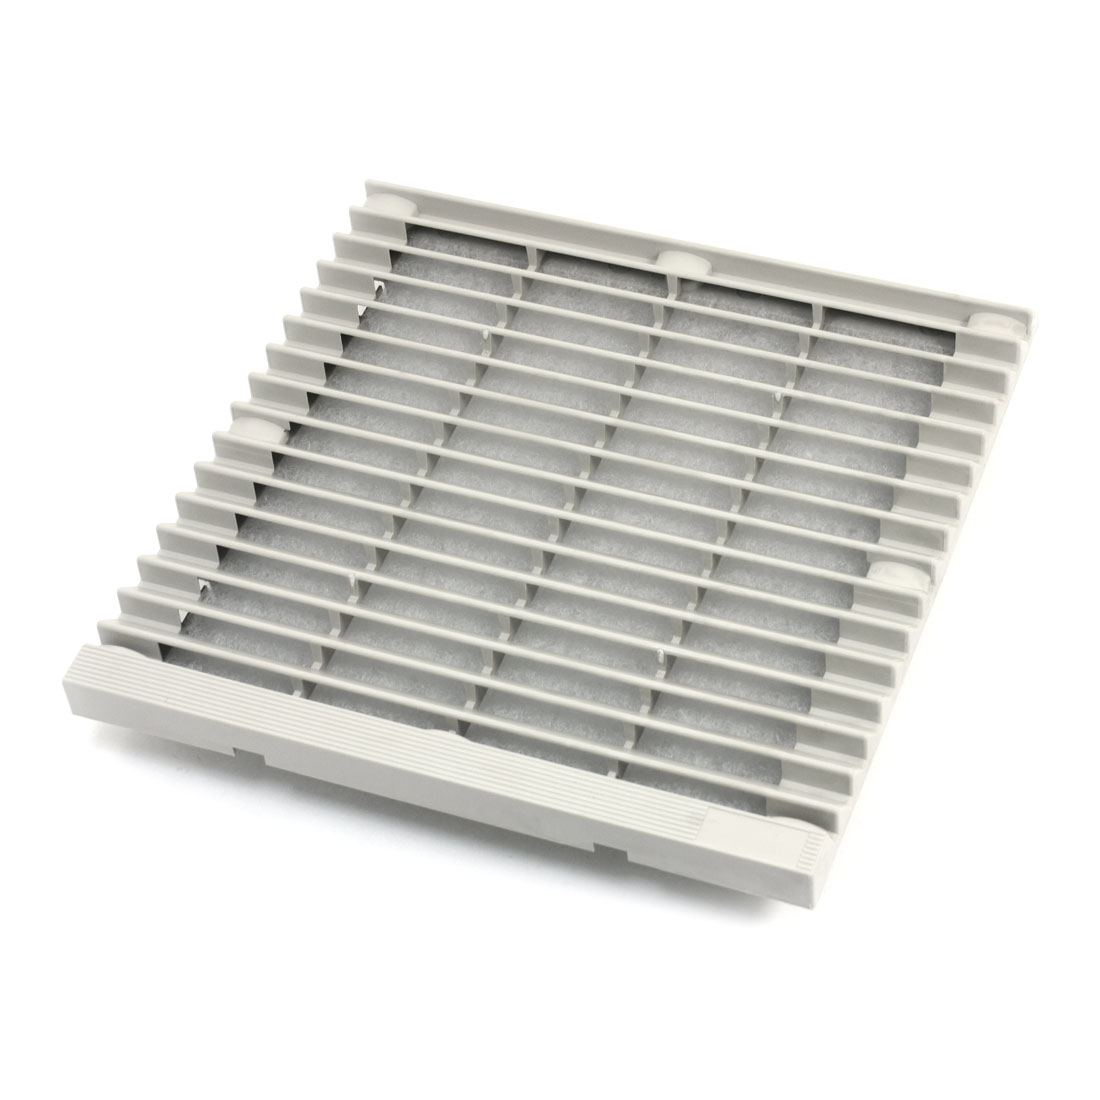 204mm x 204mm Square Gray Plastic Dustproof Mesh Sponge Foam Cabinet Axial Flow Fan Dust Air Filter